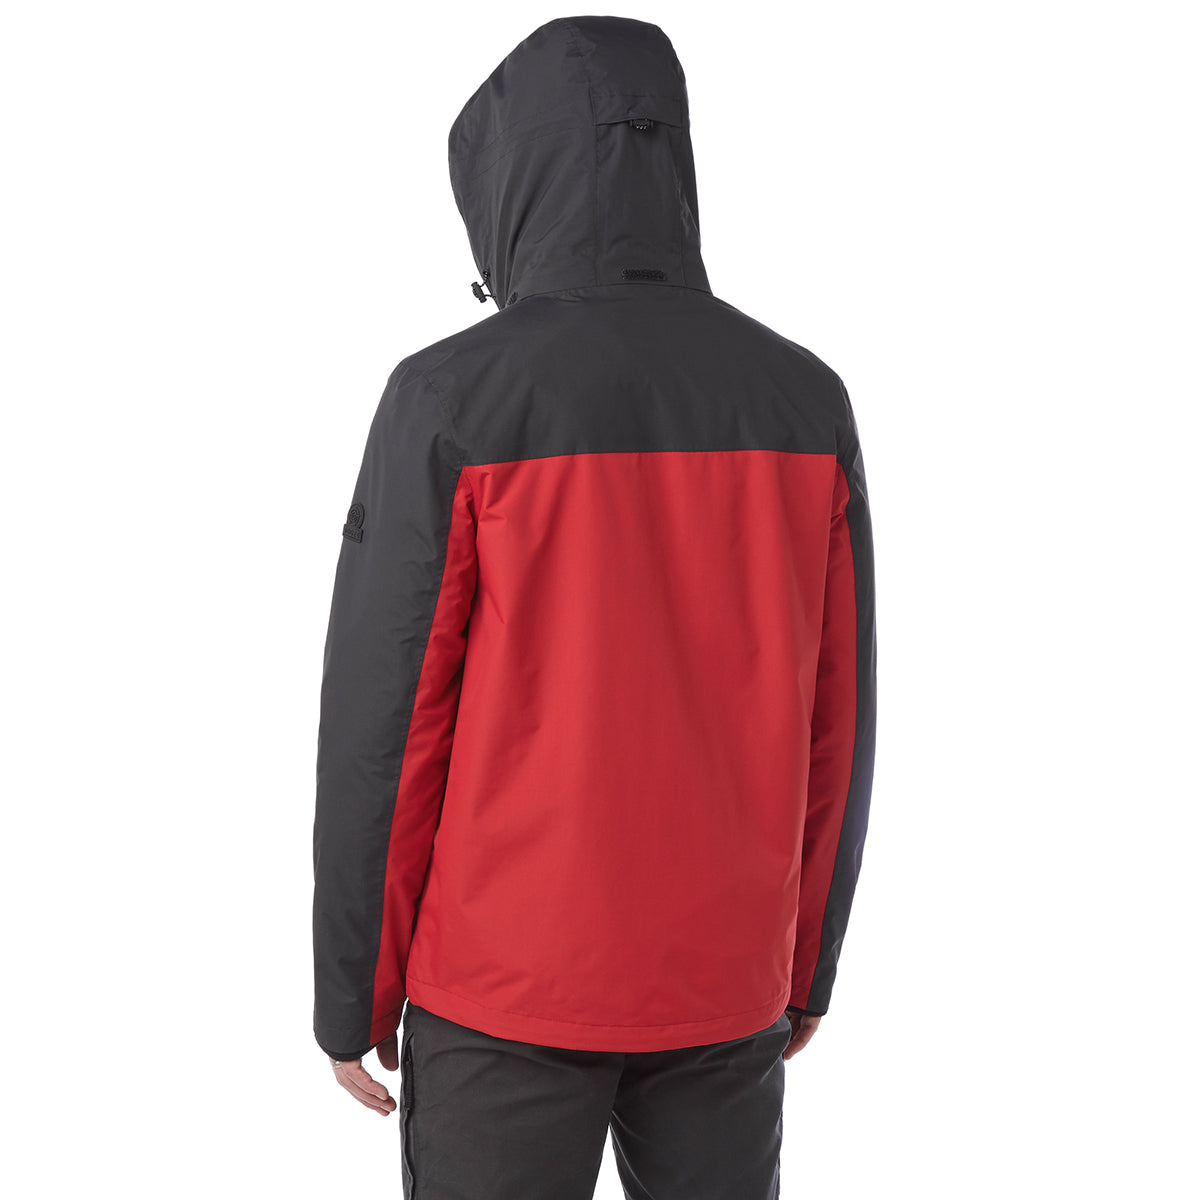 Gambit Mens Waterproof 3-In-1 Jacket - Chilli/Charcoal image 4